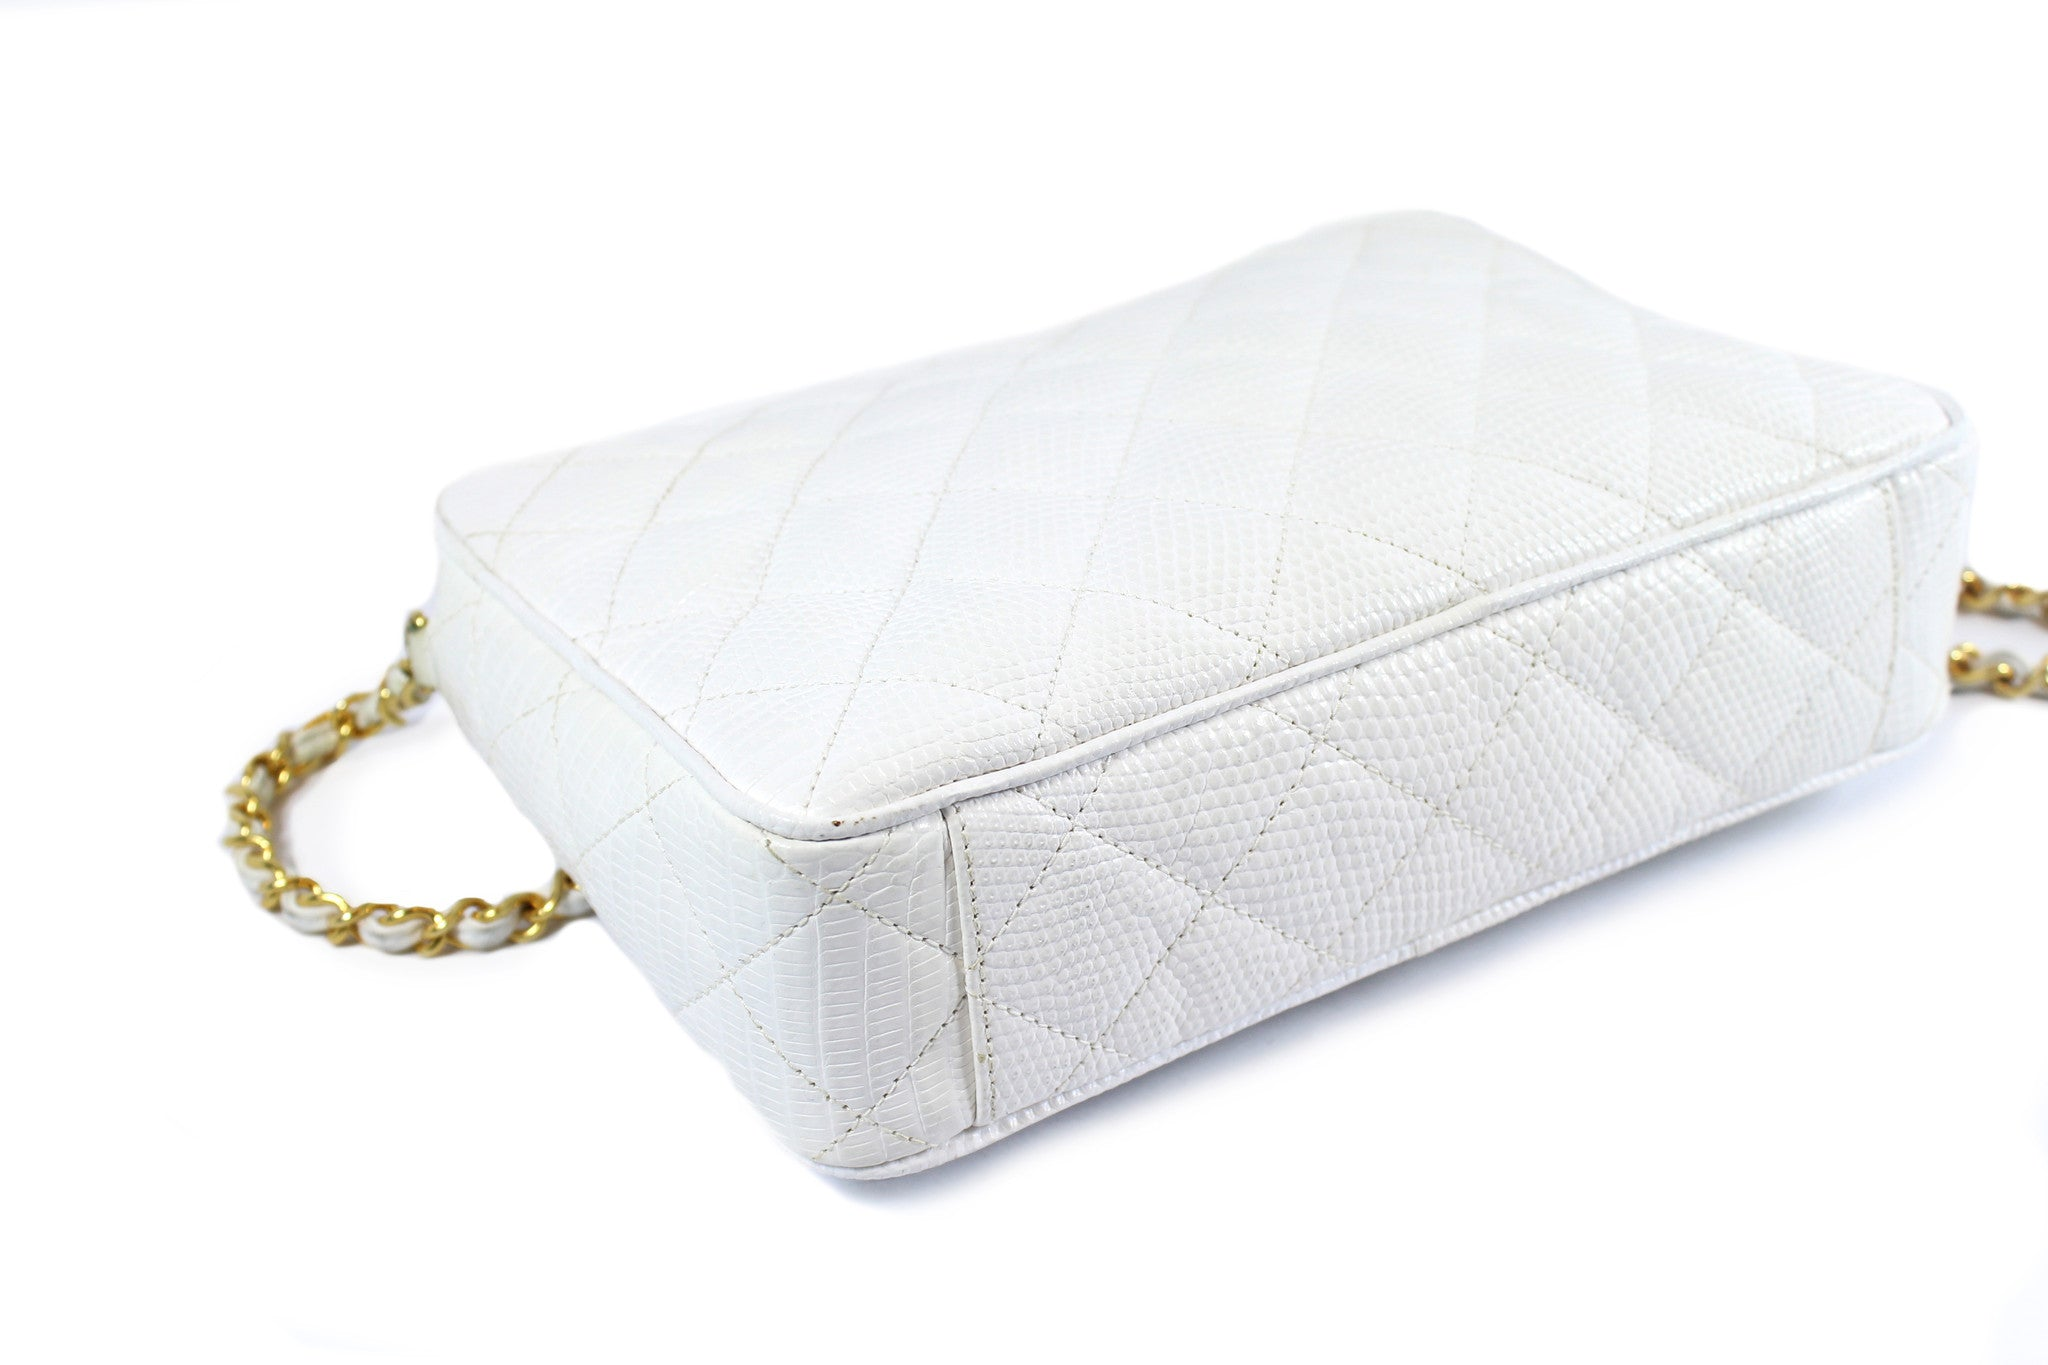 Chanel Vintage White Lizard Leather Tassel Bag - Encore Consignment - 7